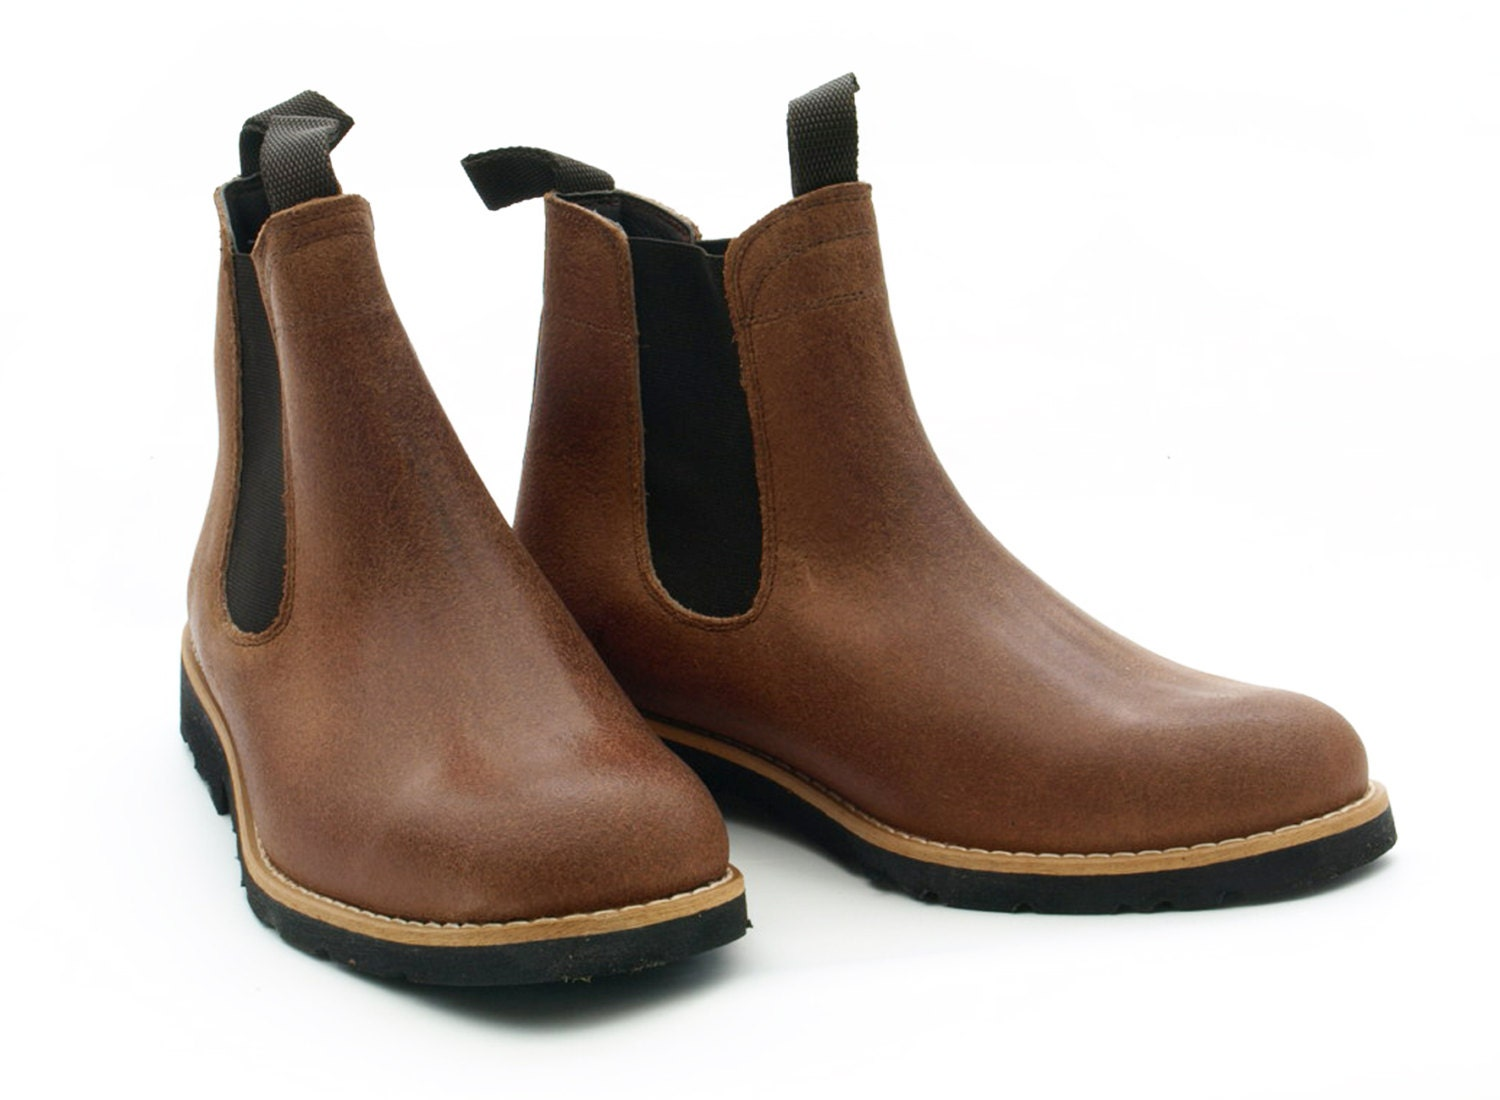 leather boots recycled tyre soles portugal portuguese